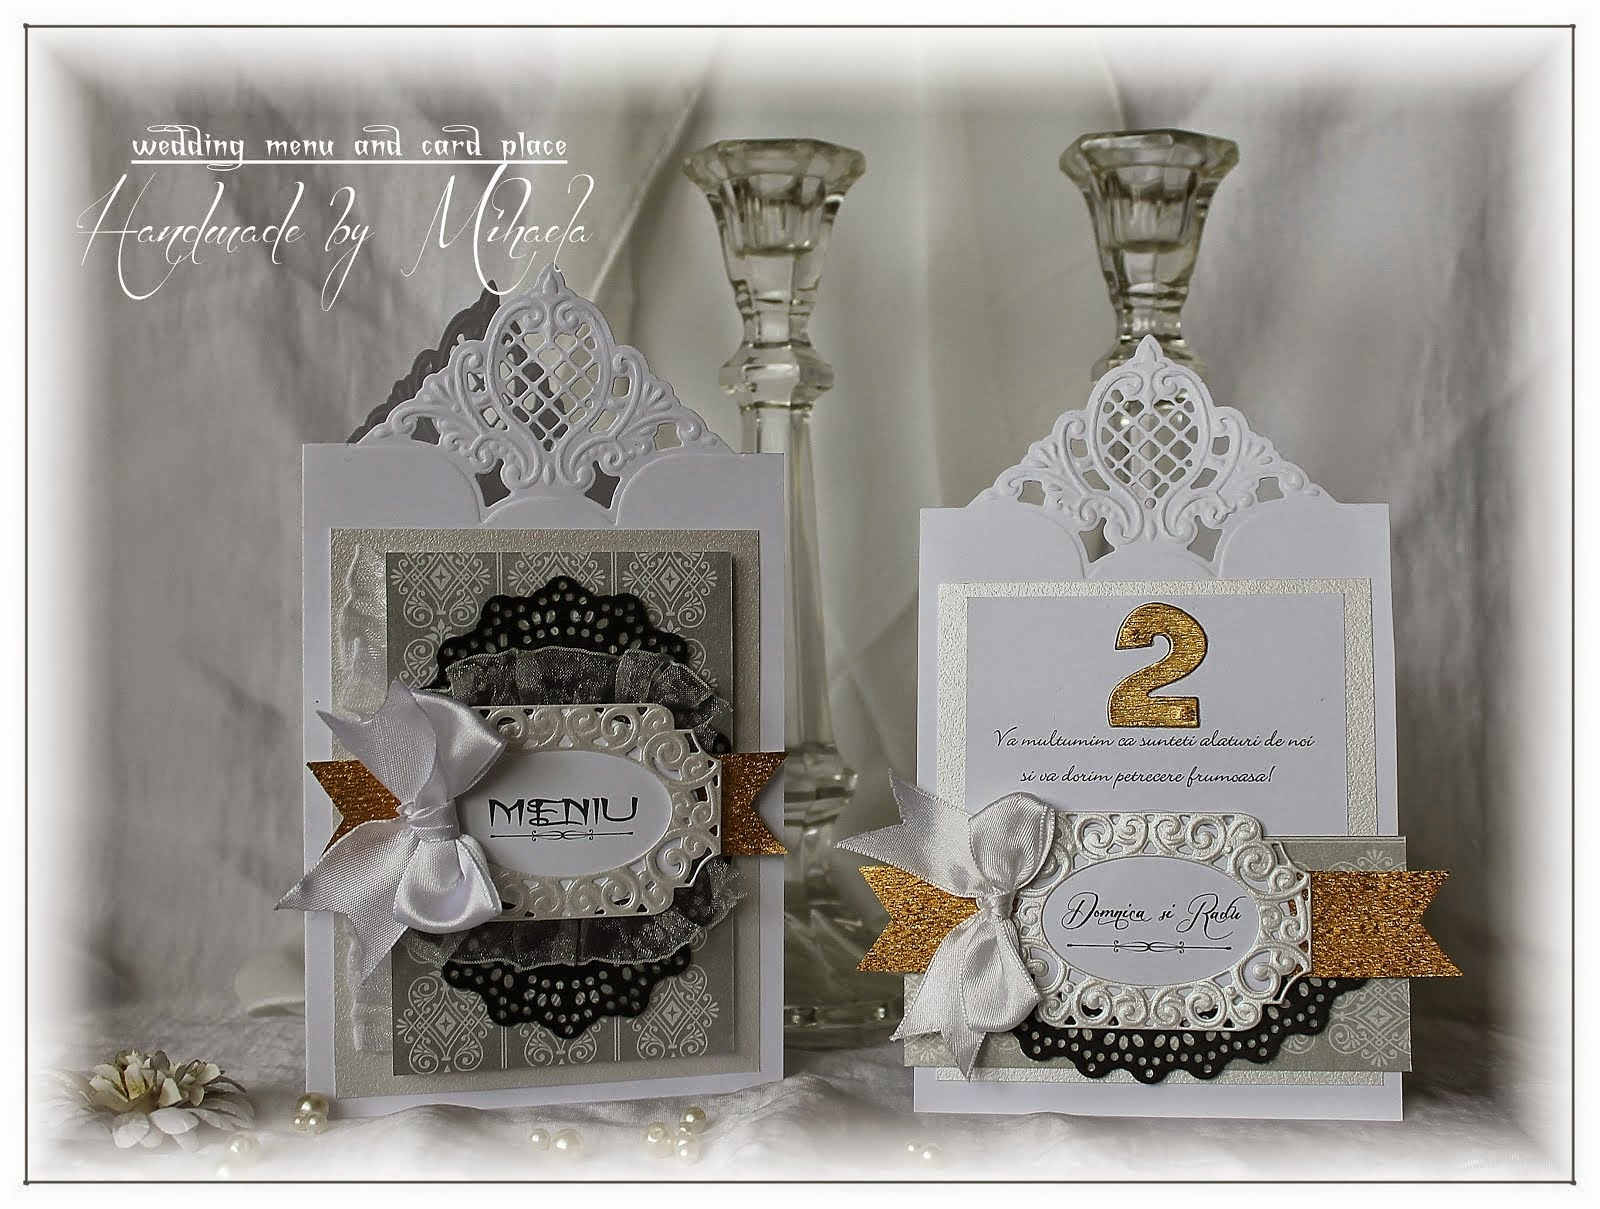 Wedding menu and place card